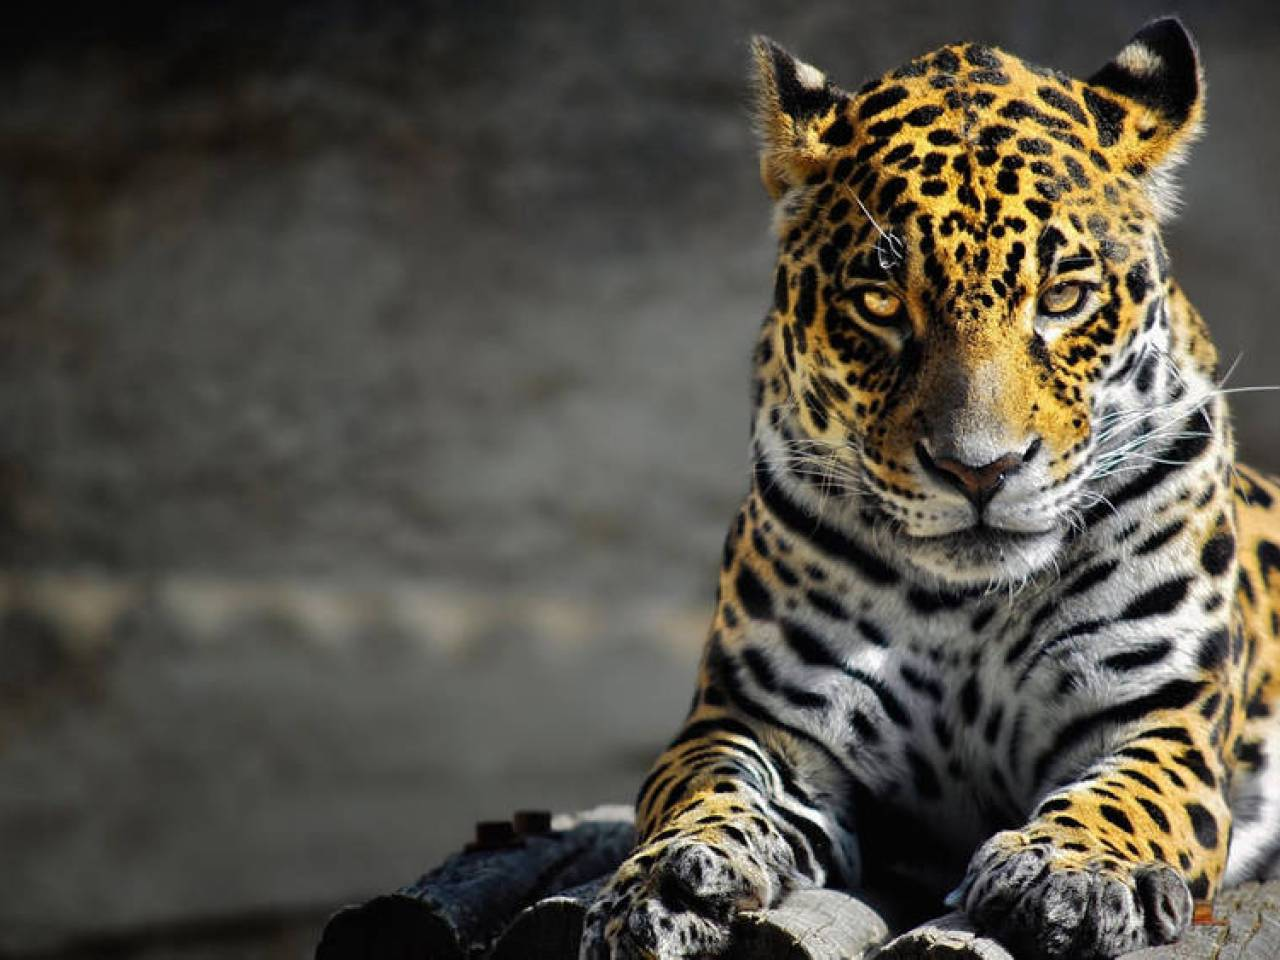 wallpapers tagged with relaxing: cub wild cute tiger white kitty